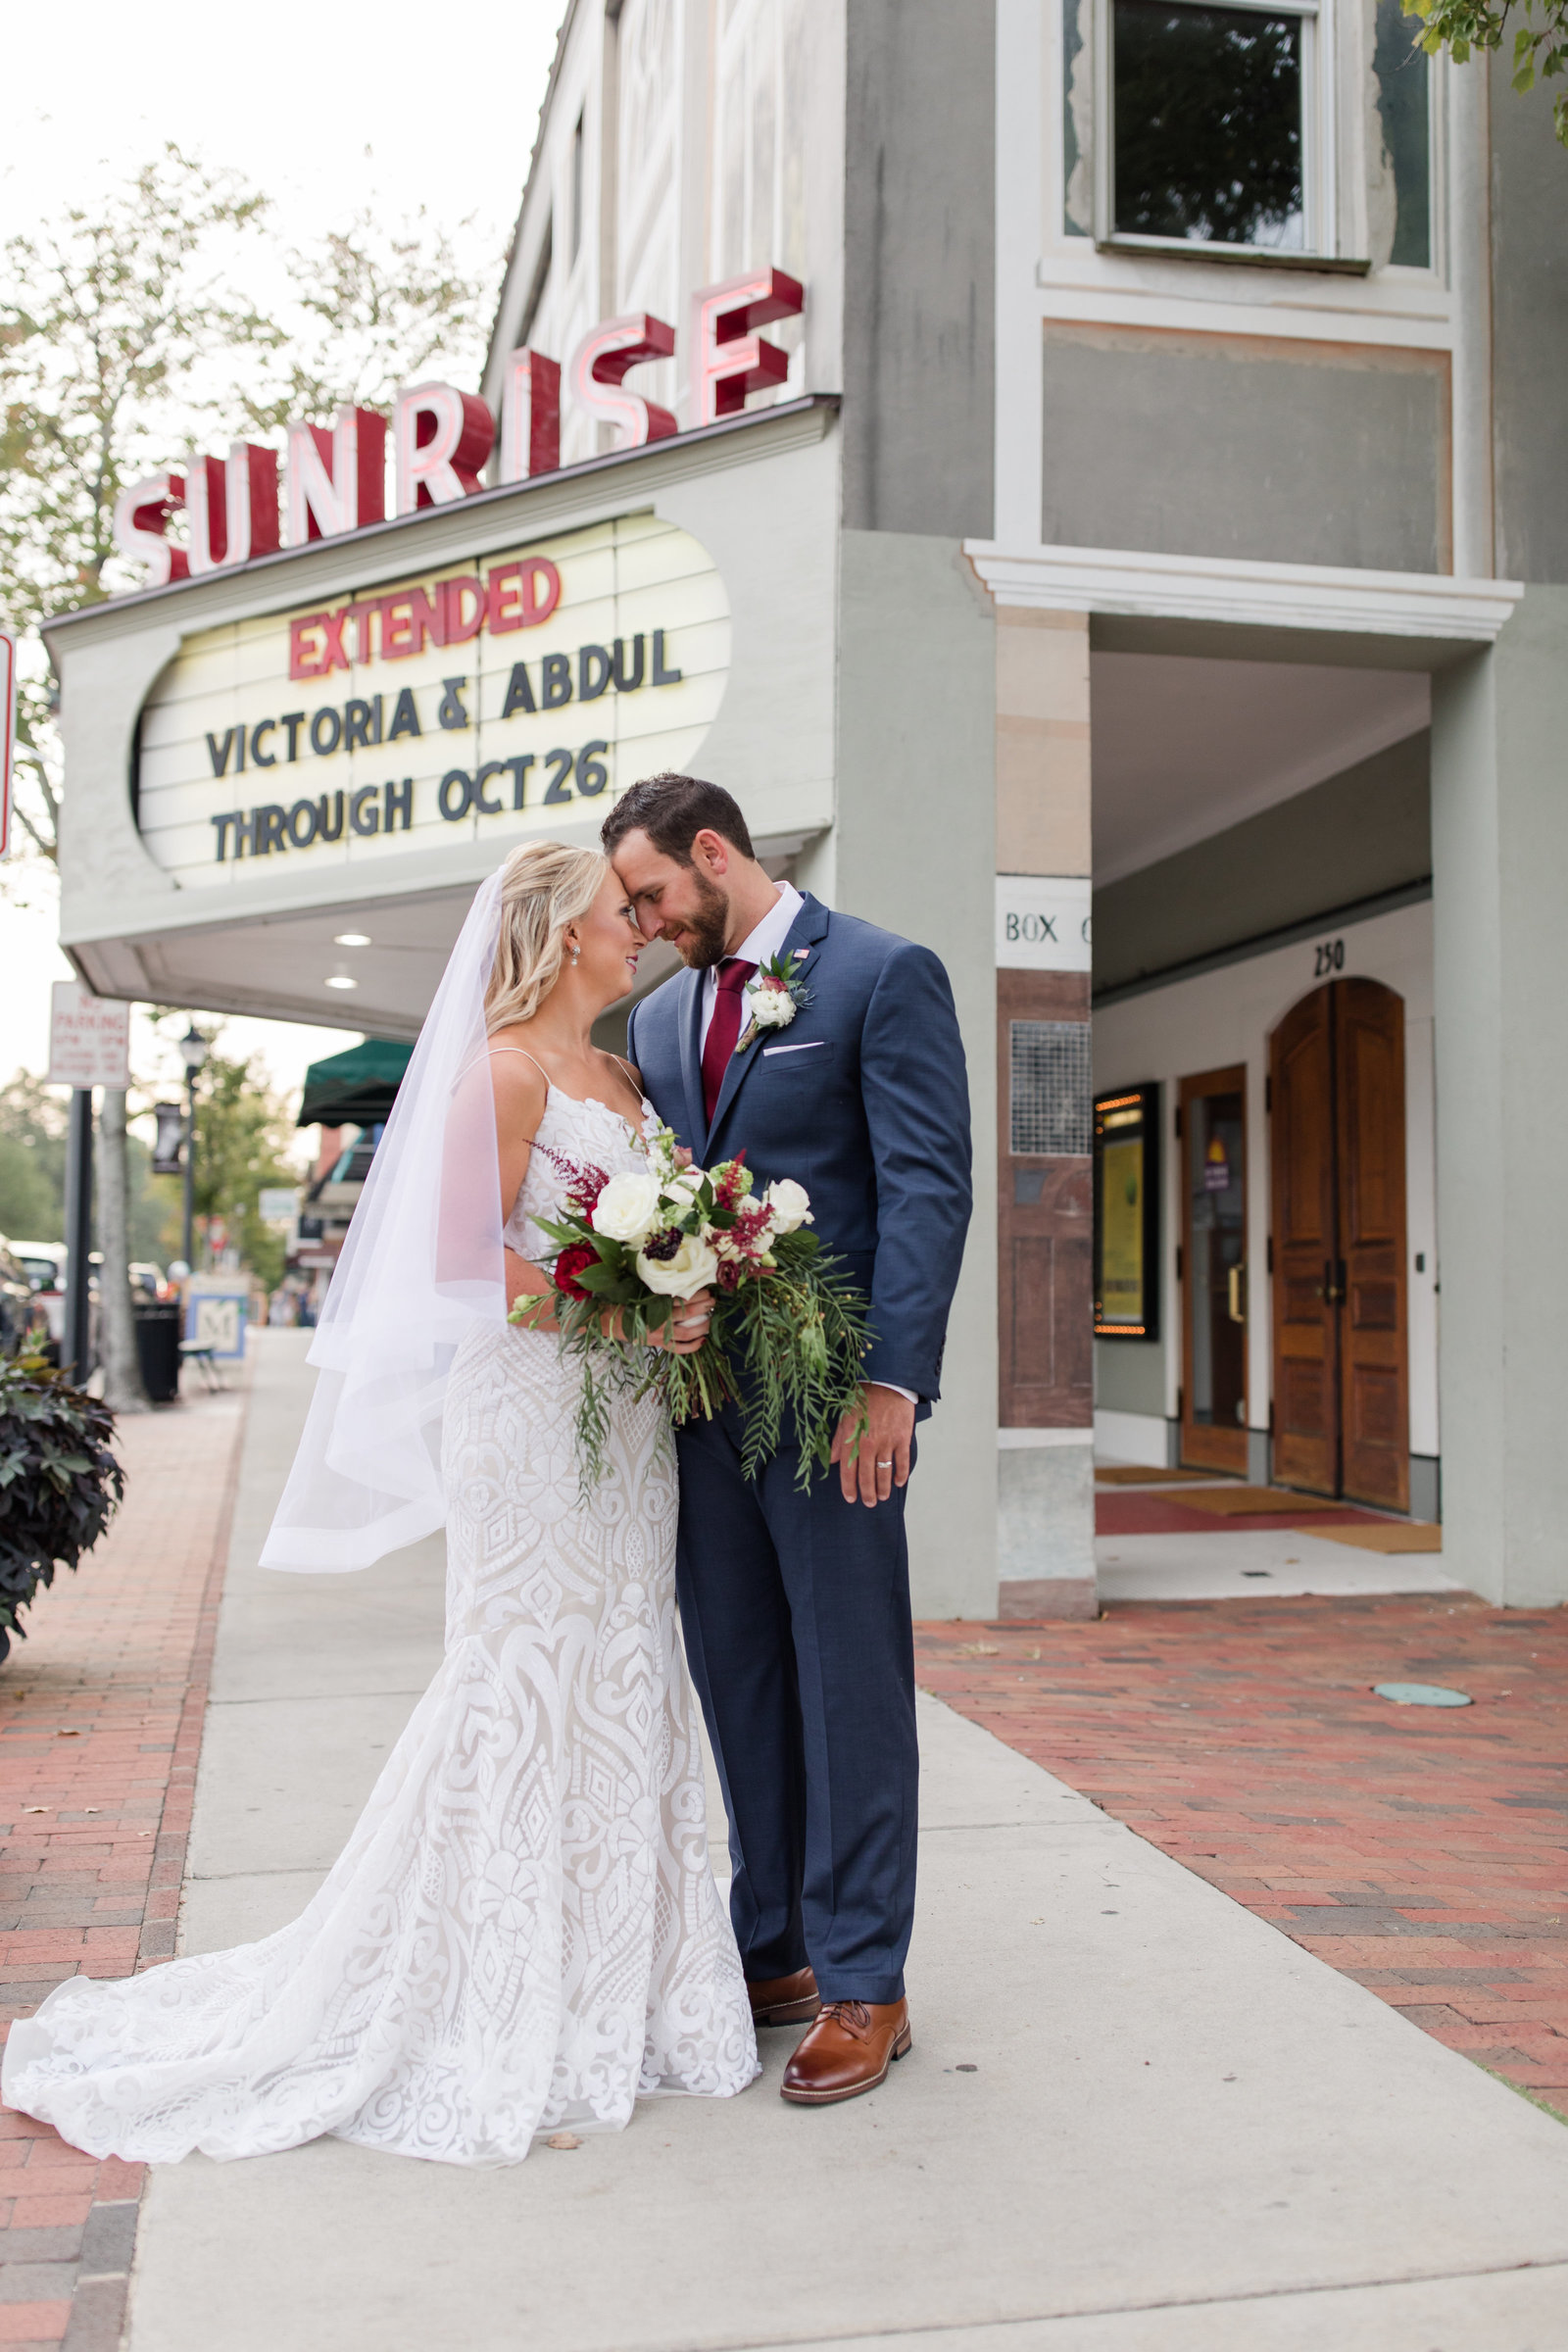 Beautiful bride and groom portrait at the Sunrise Theater, Southern Pines, NC-305 Trackside Wedding